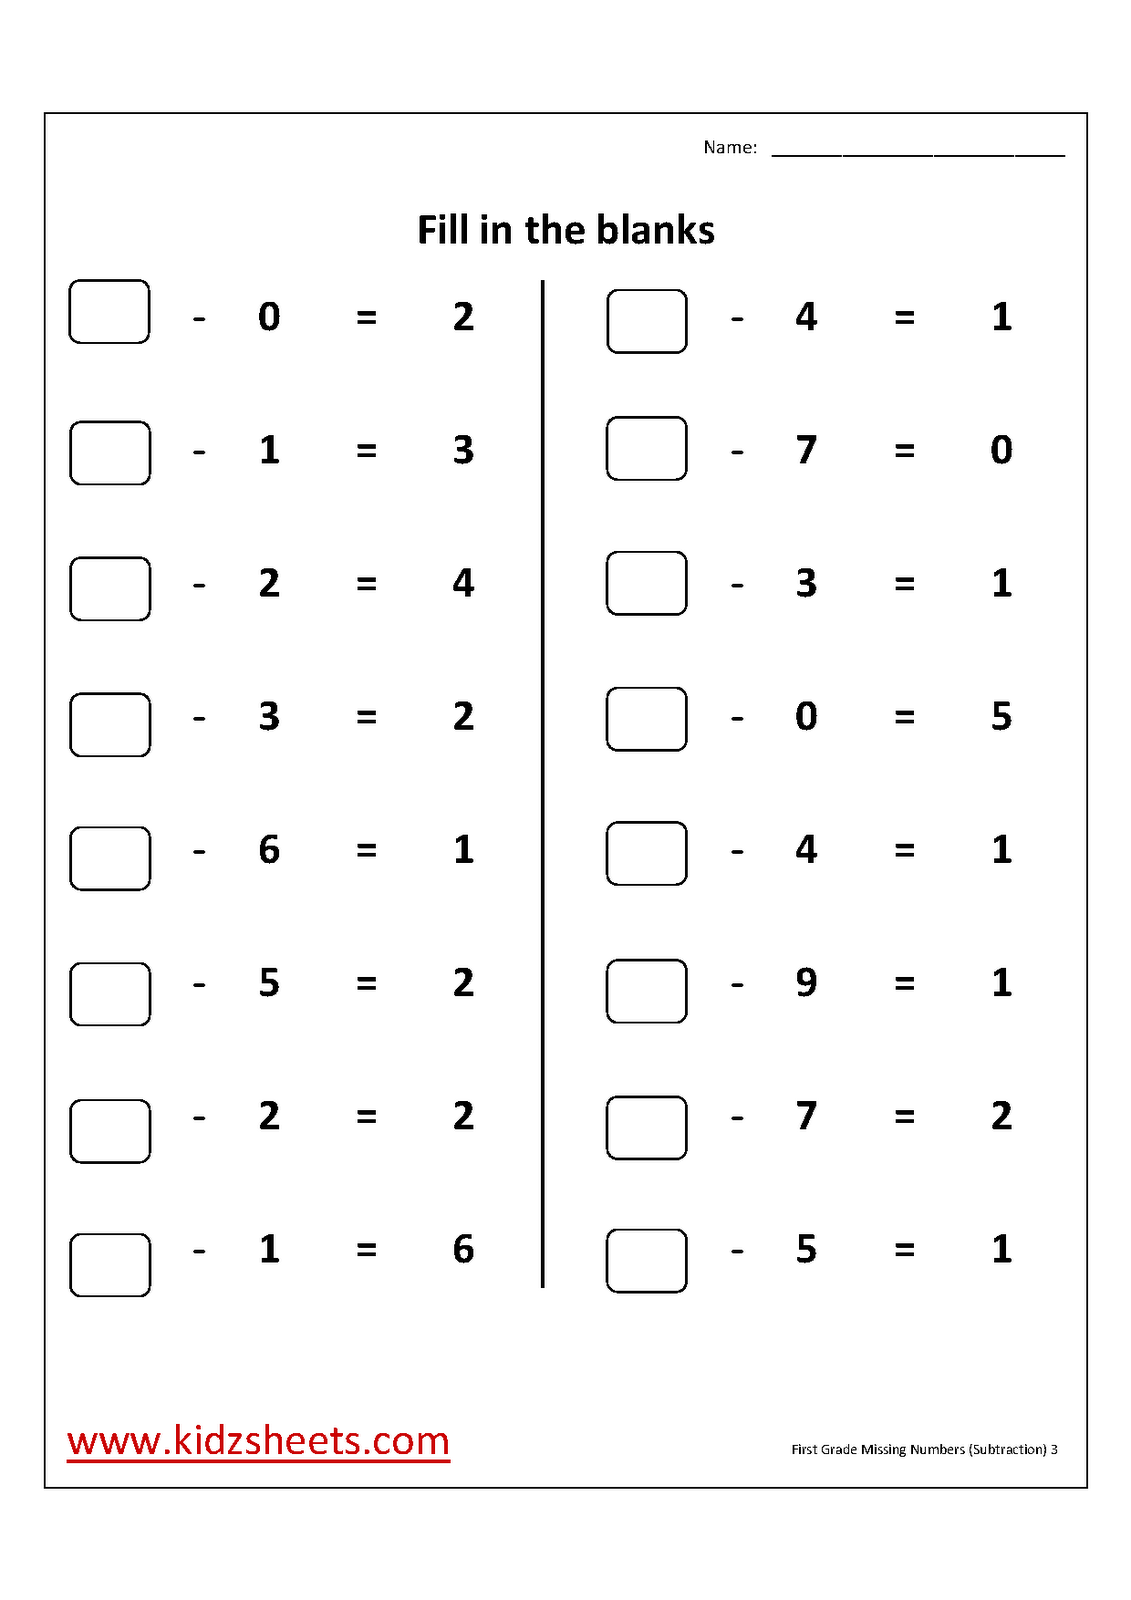 Free Printable First Grade Worksheets, Free Worksheets, Kids Maths Worksheets, Maths Worksheets, First Grade Missing numbers Subtraction Worksheets, Missing numbers (Subtraction), First Grade, Kids Missing numbers (Subtraction)